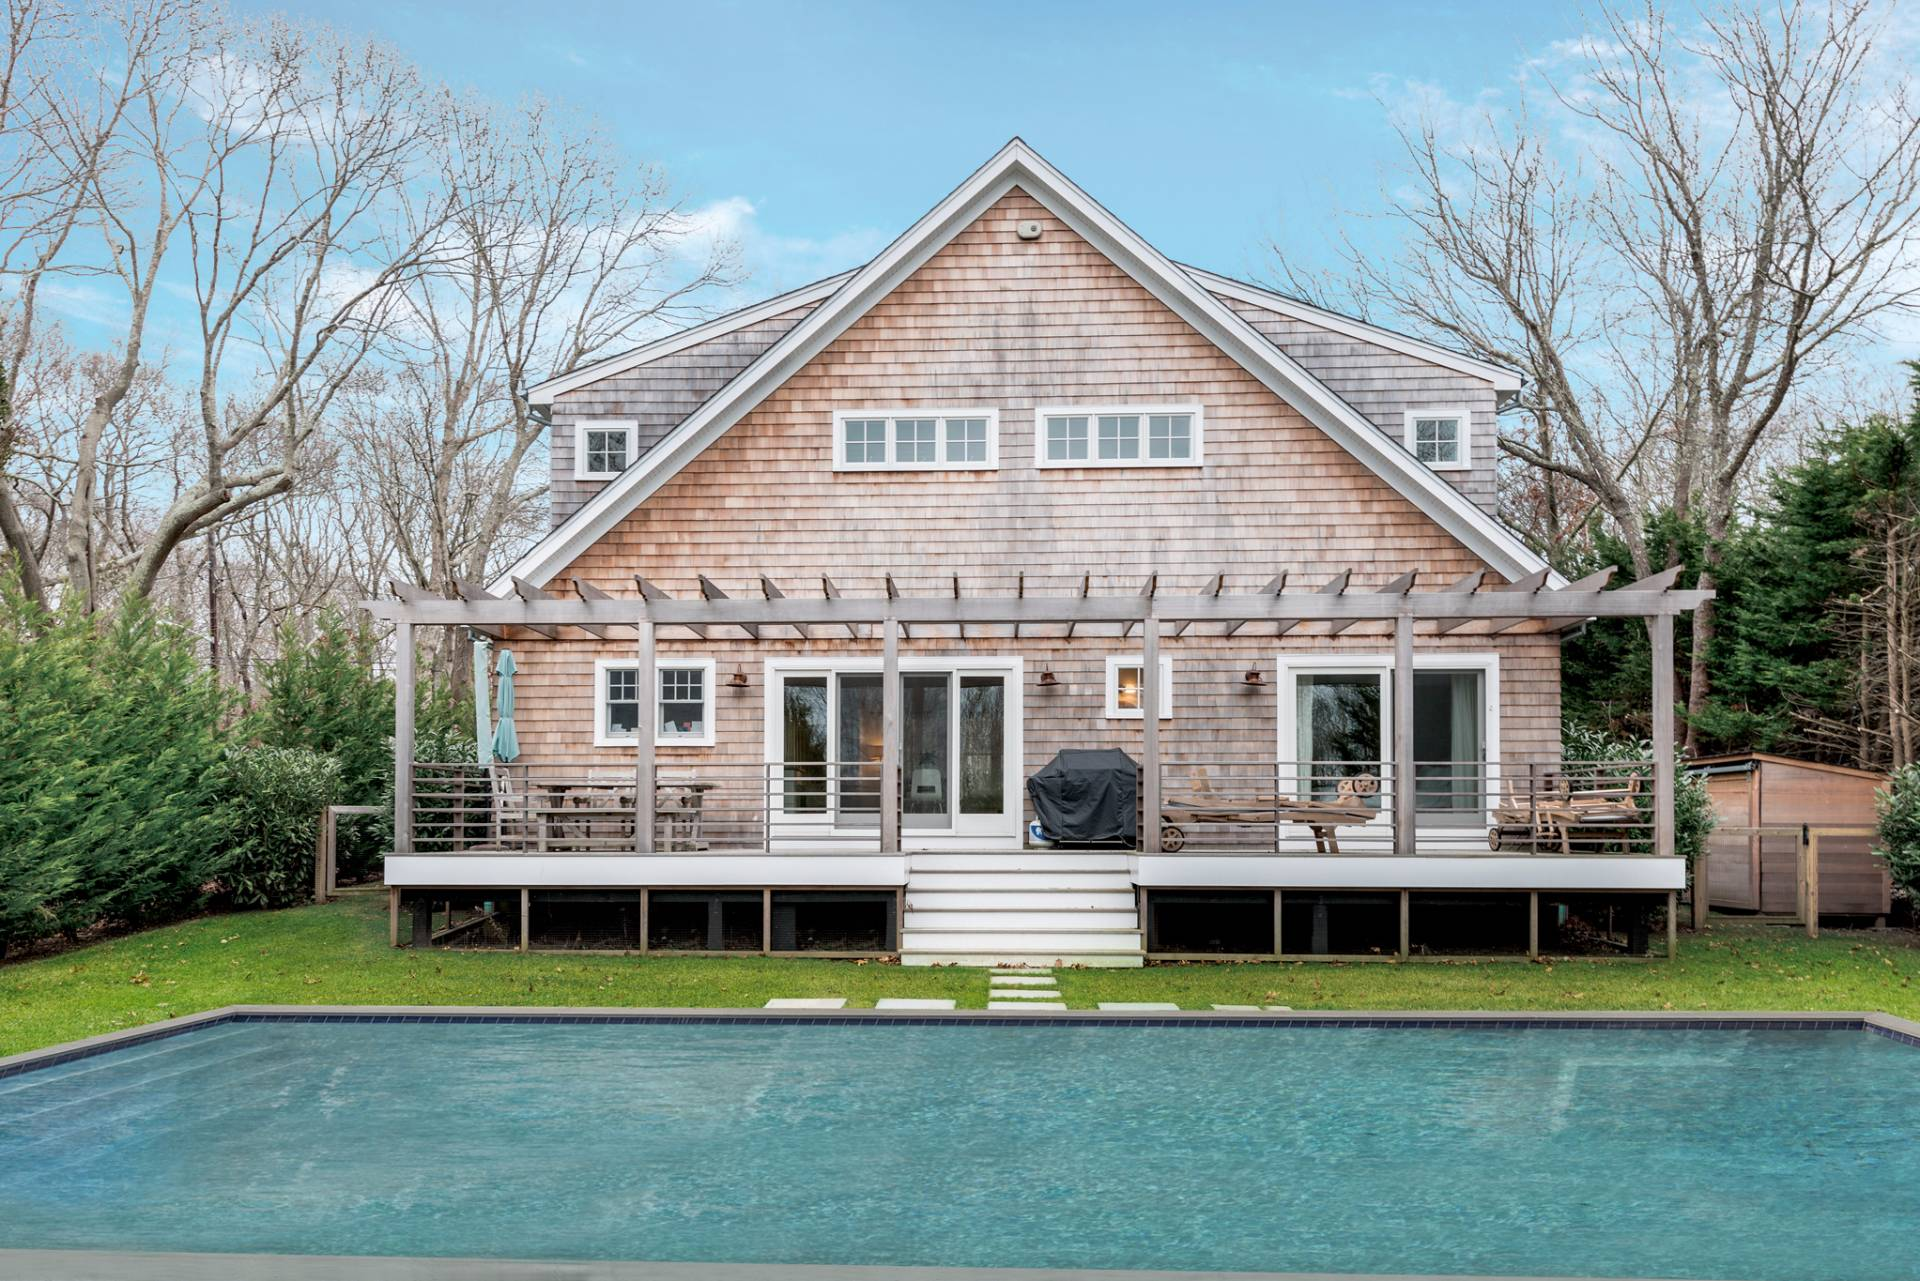 Single Family Home for Sale at Builder's Own - Custom Construction 21 Richards Drive, Sag Harbor, New York